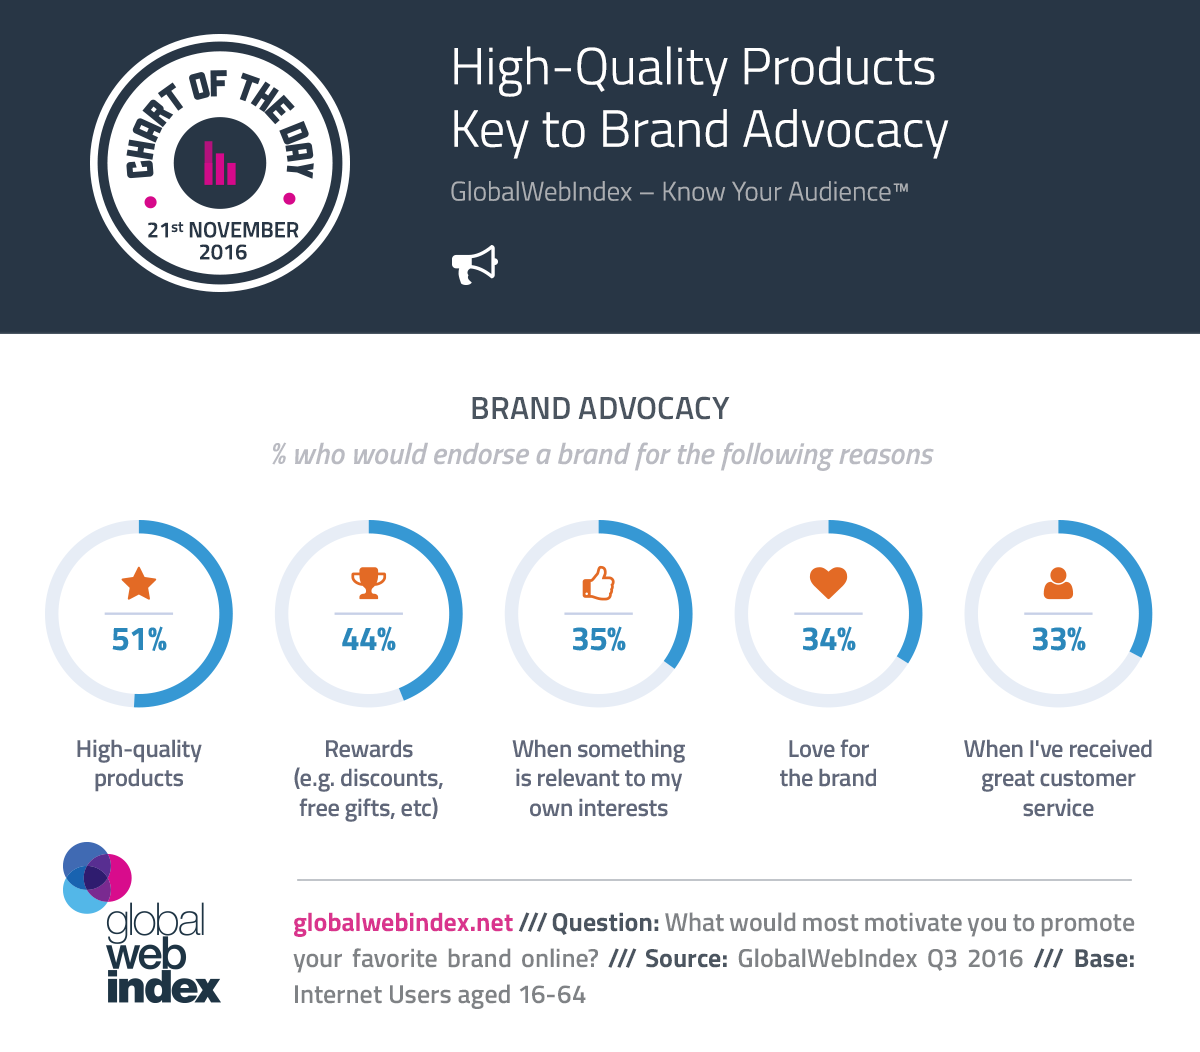 High-Quality Products Key to Brand Advocacy